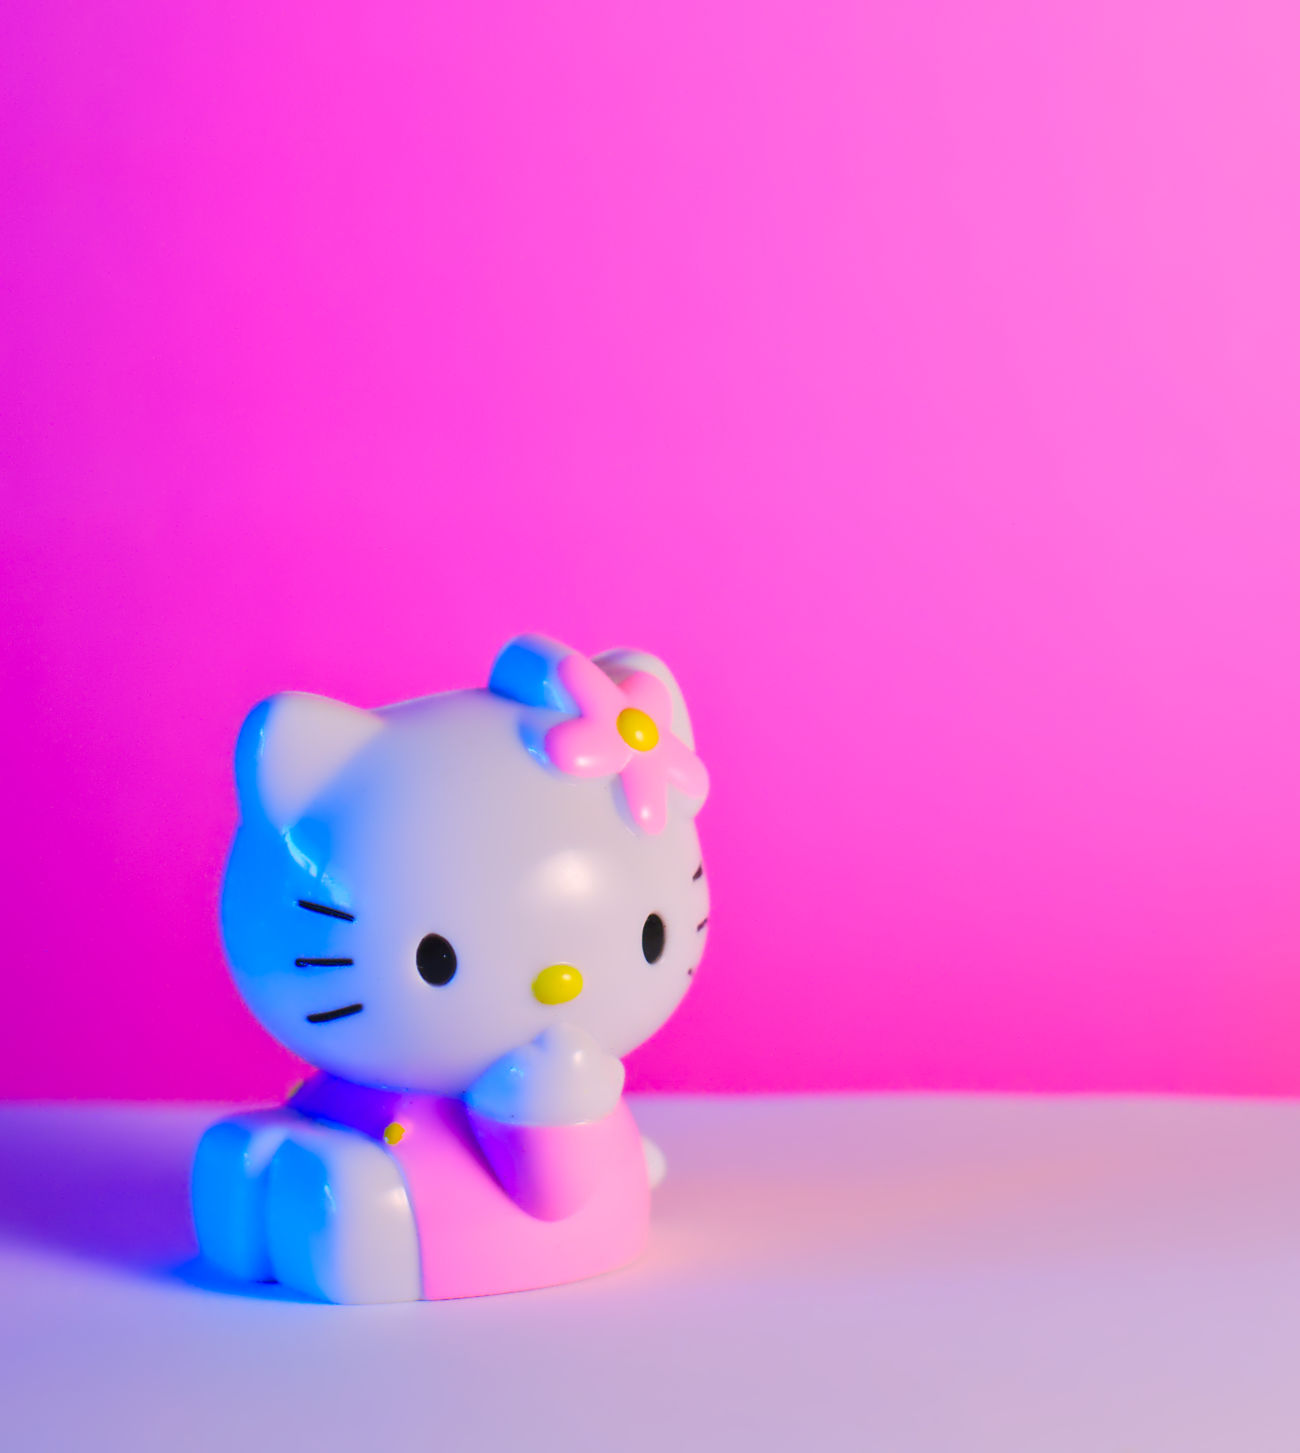 Hello Kitty Close-up Color Of Life Cute Extreme Colors Fantasy Figure Focus On Foreground Funny Girly Hello Kitty Japan Kitty Light And Shadow Millennial Pink Nikon Pink Pink Background Pink Color Single Object Still Life Photography Studio Shot Toy Toy Adventures ハローキティ 日本